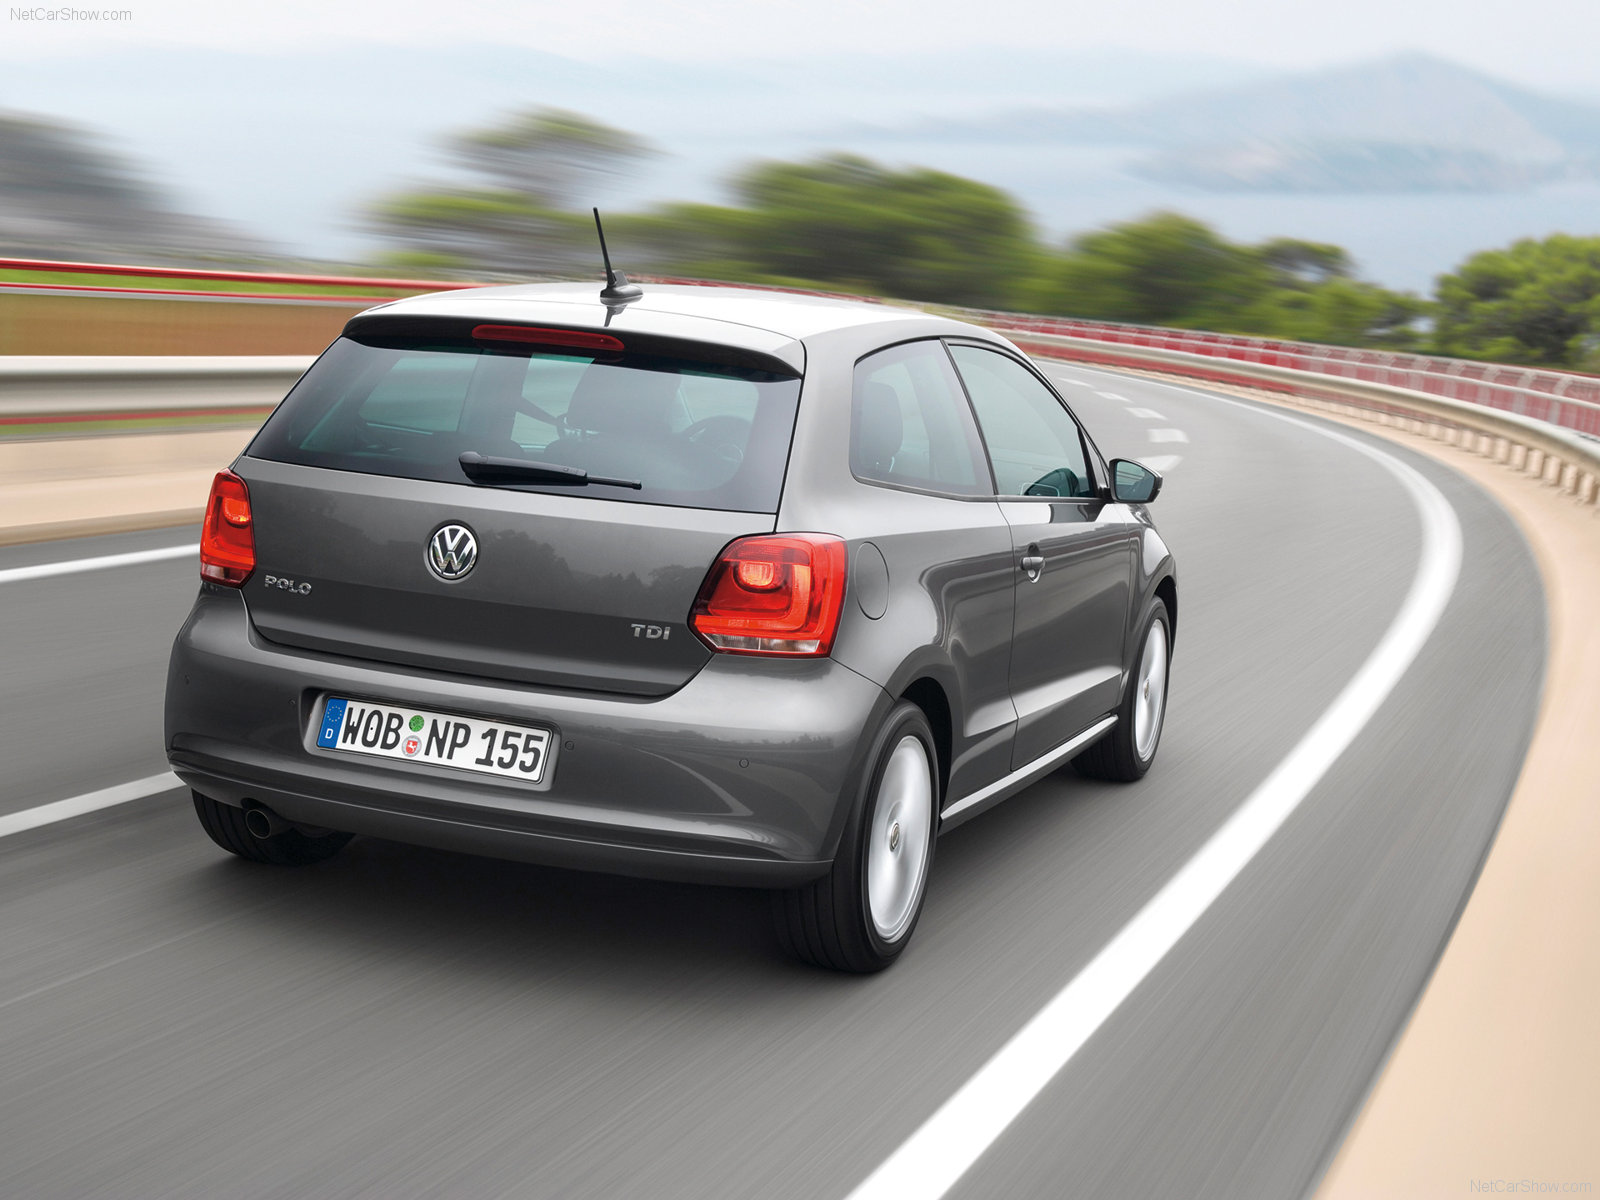 Volkswagen Polo 3 Door Hatchback 2010